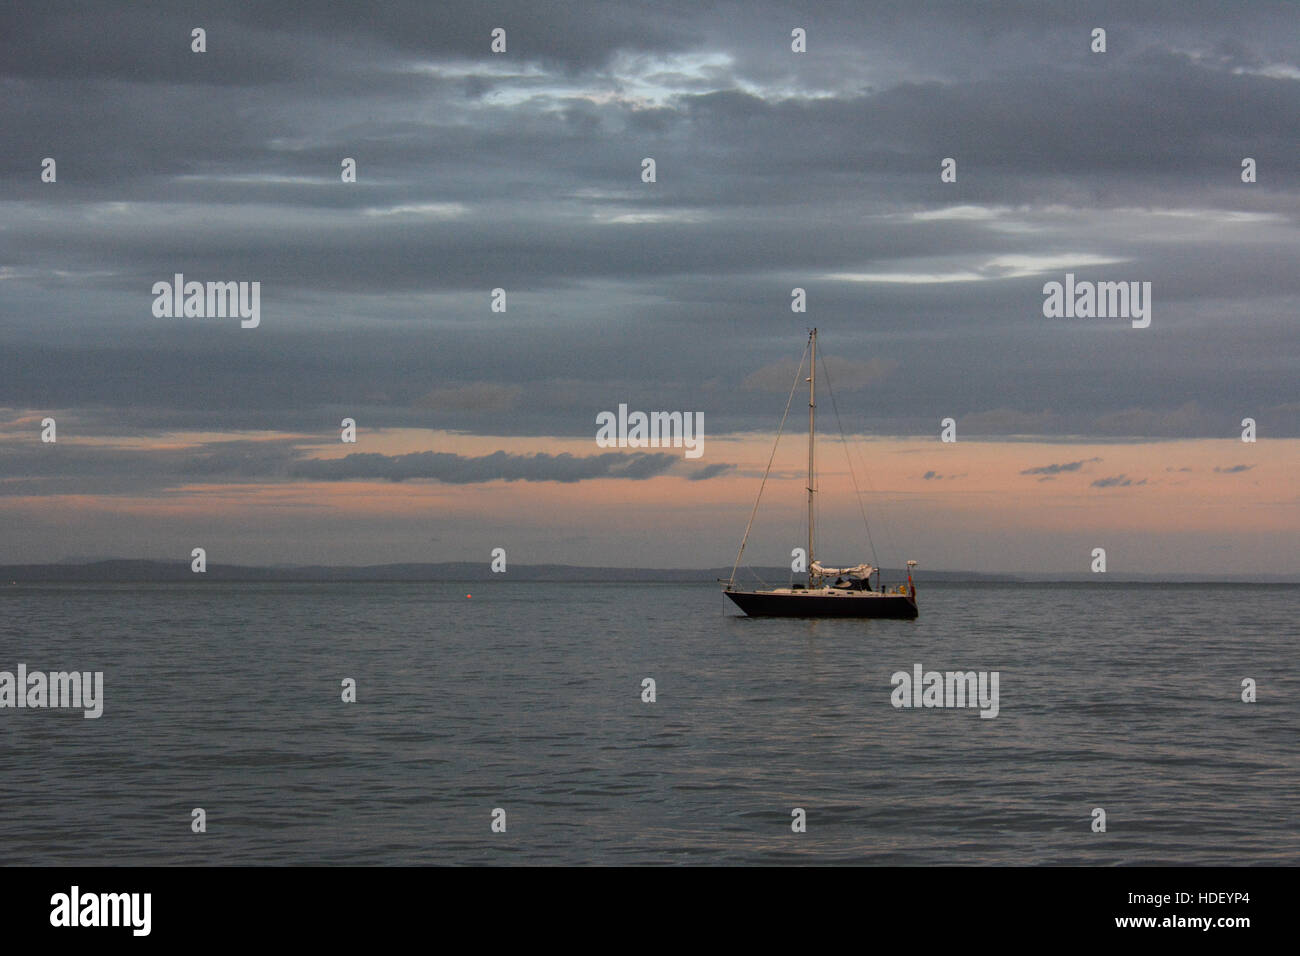 A yacht anchored on a calm summers evening with a tranquil sunset. - Stock Image